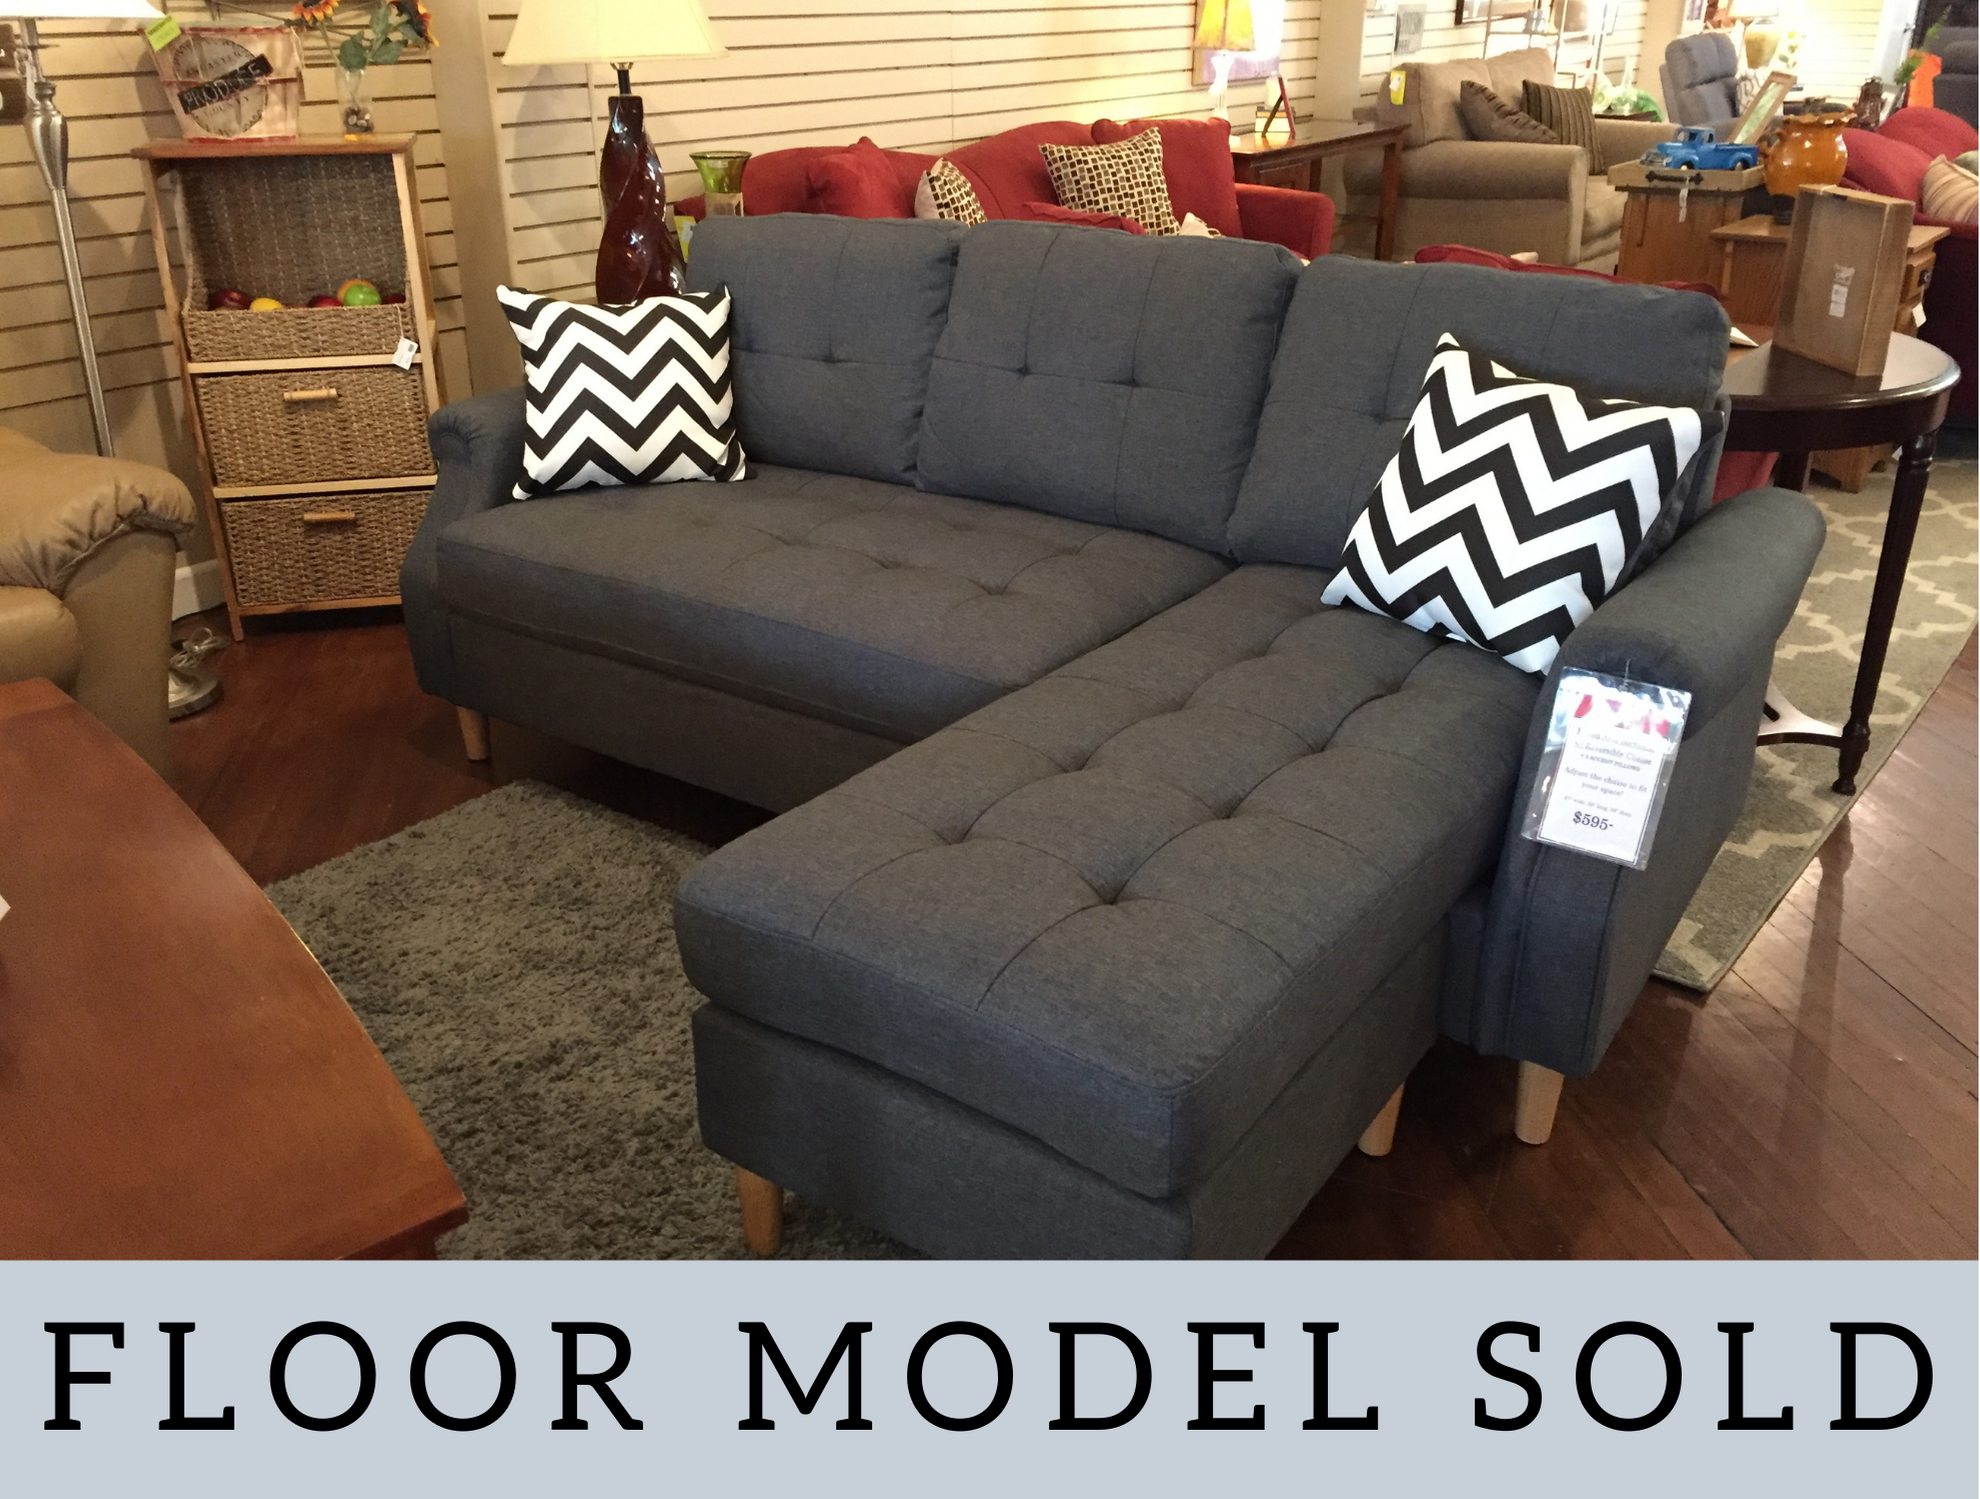 BLUE GRAY ROLLED ARM SOFA